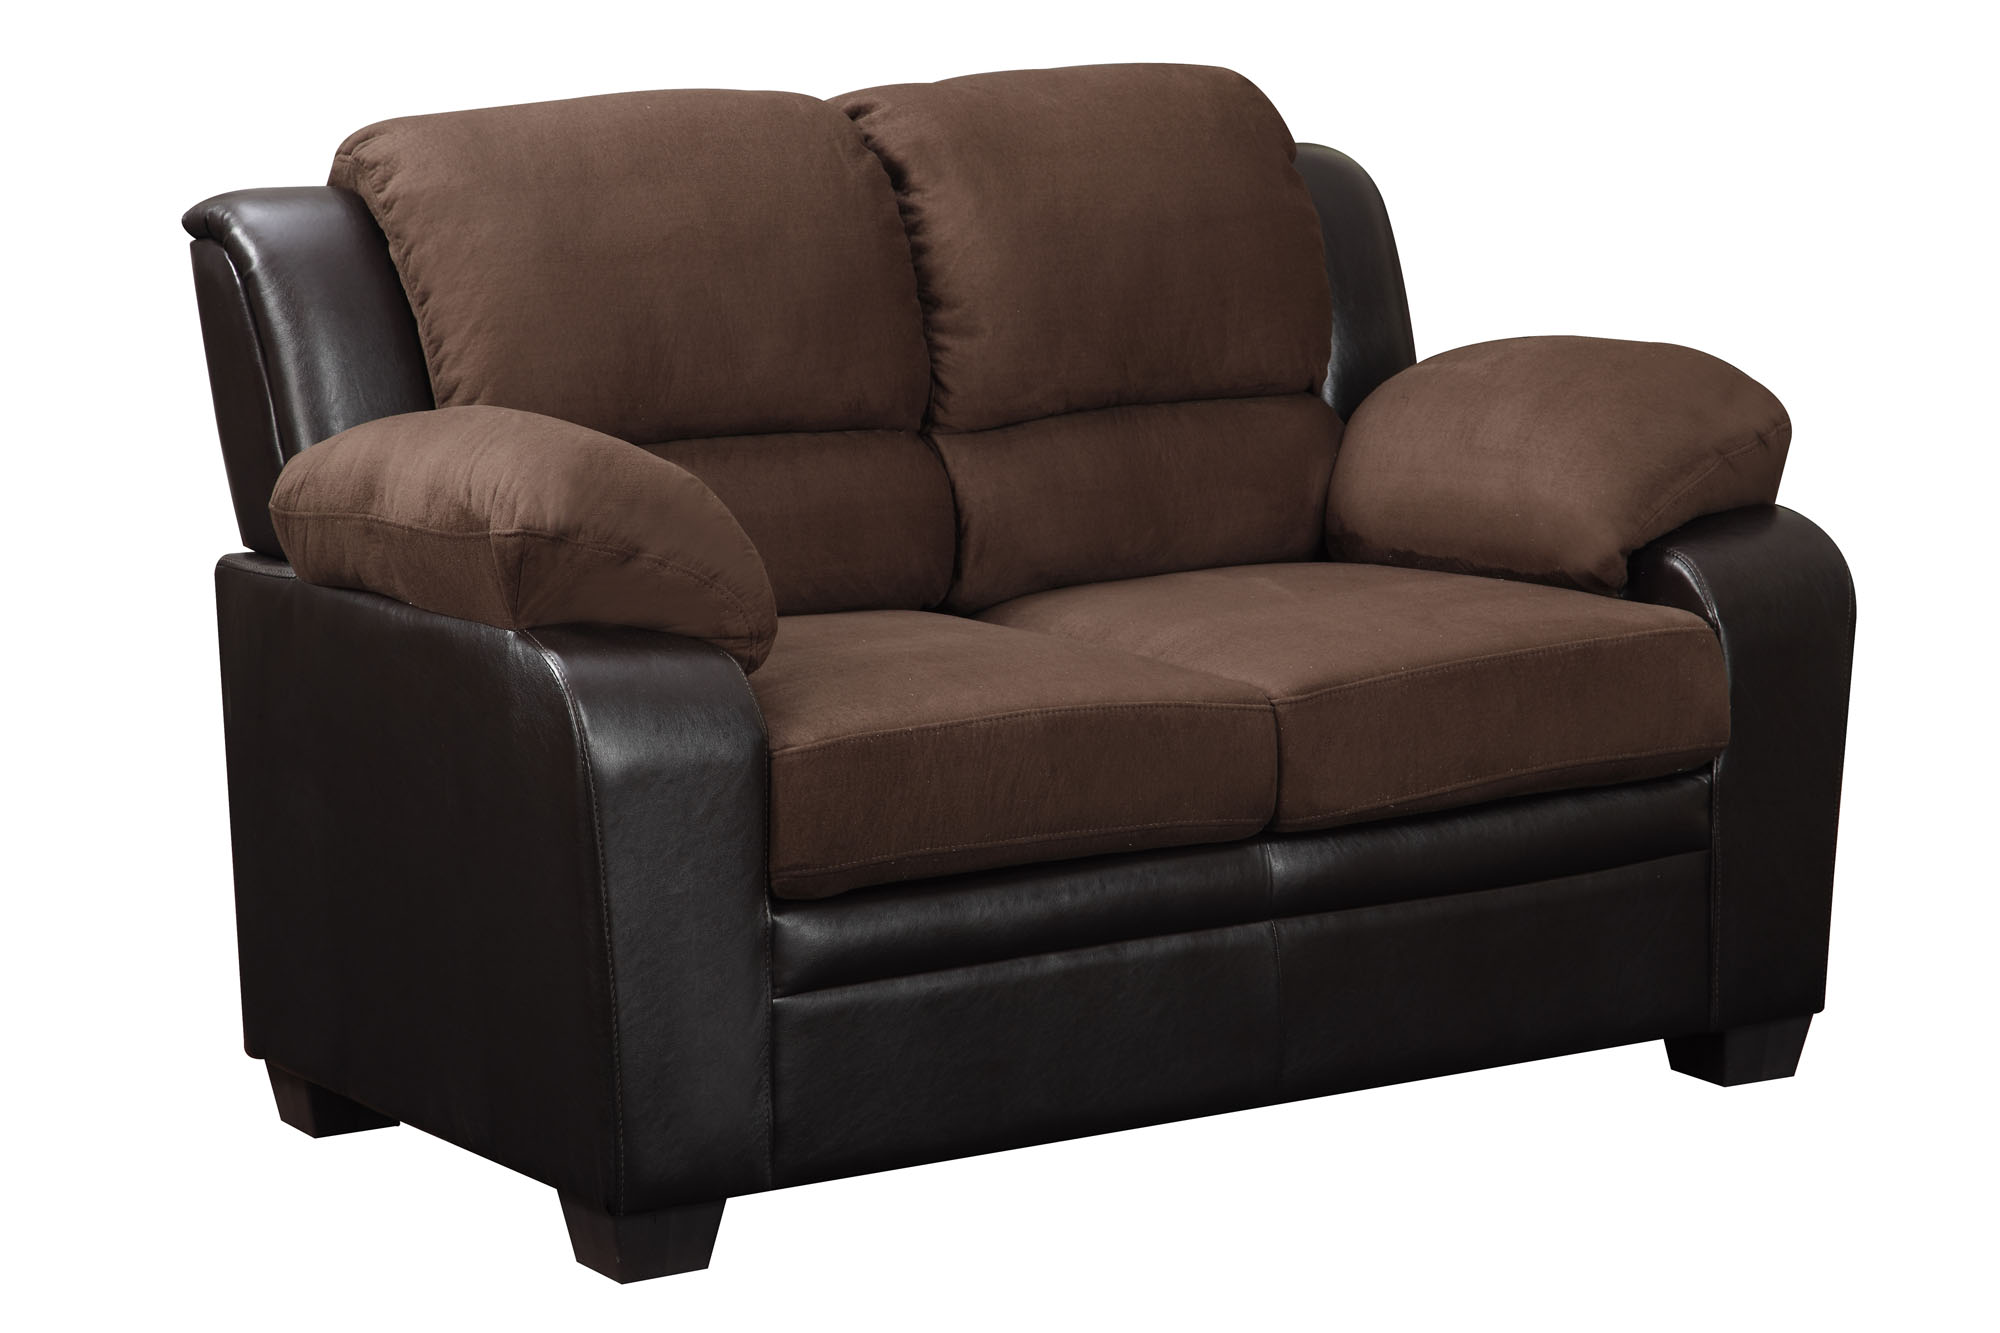 U880018kd Chocolate Microfiber Loveseat By Global Furniture